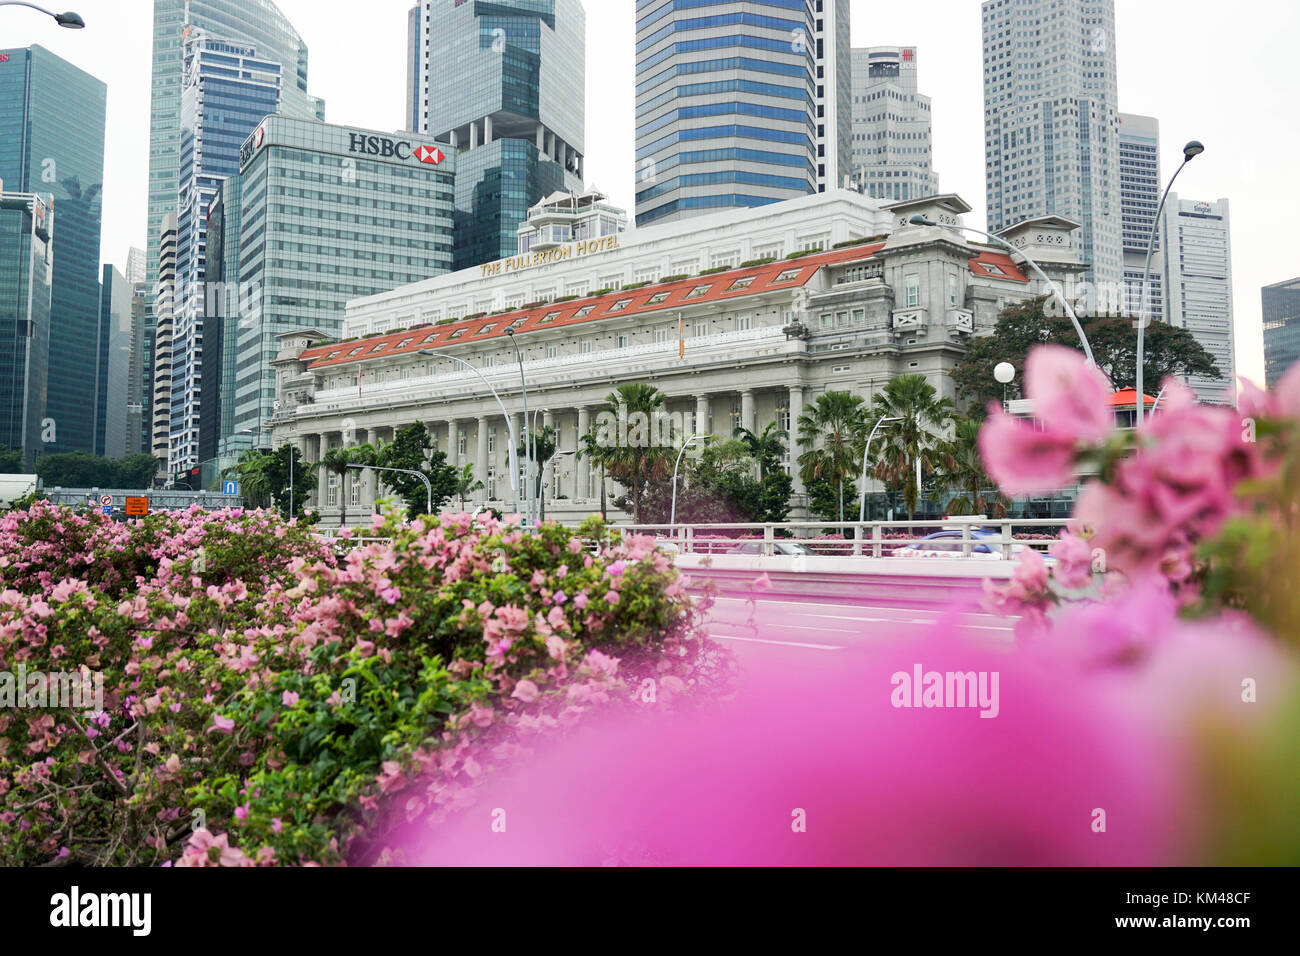 The Fullerton Hotel Singapore (previously Fullerton Building) located  near the mouth of the Singapore River. - Stock Image